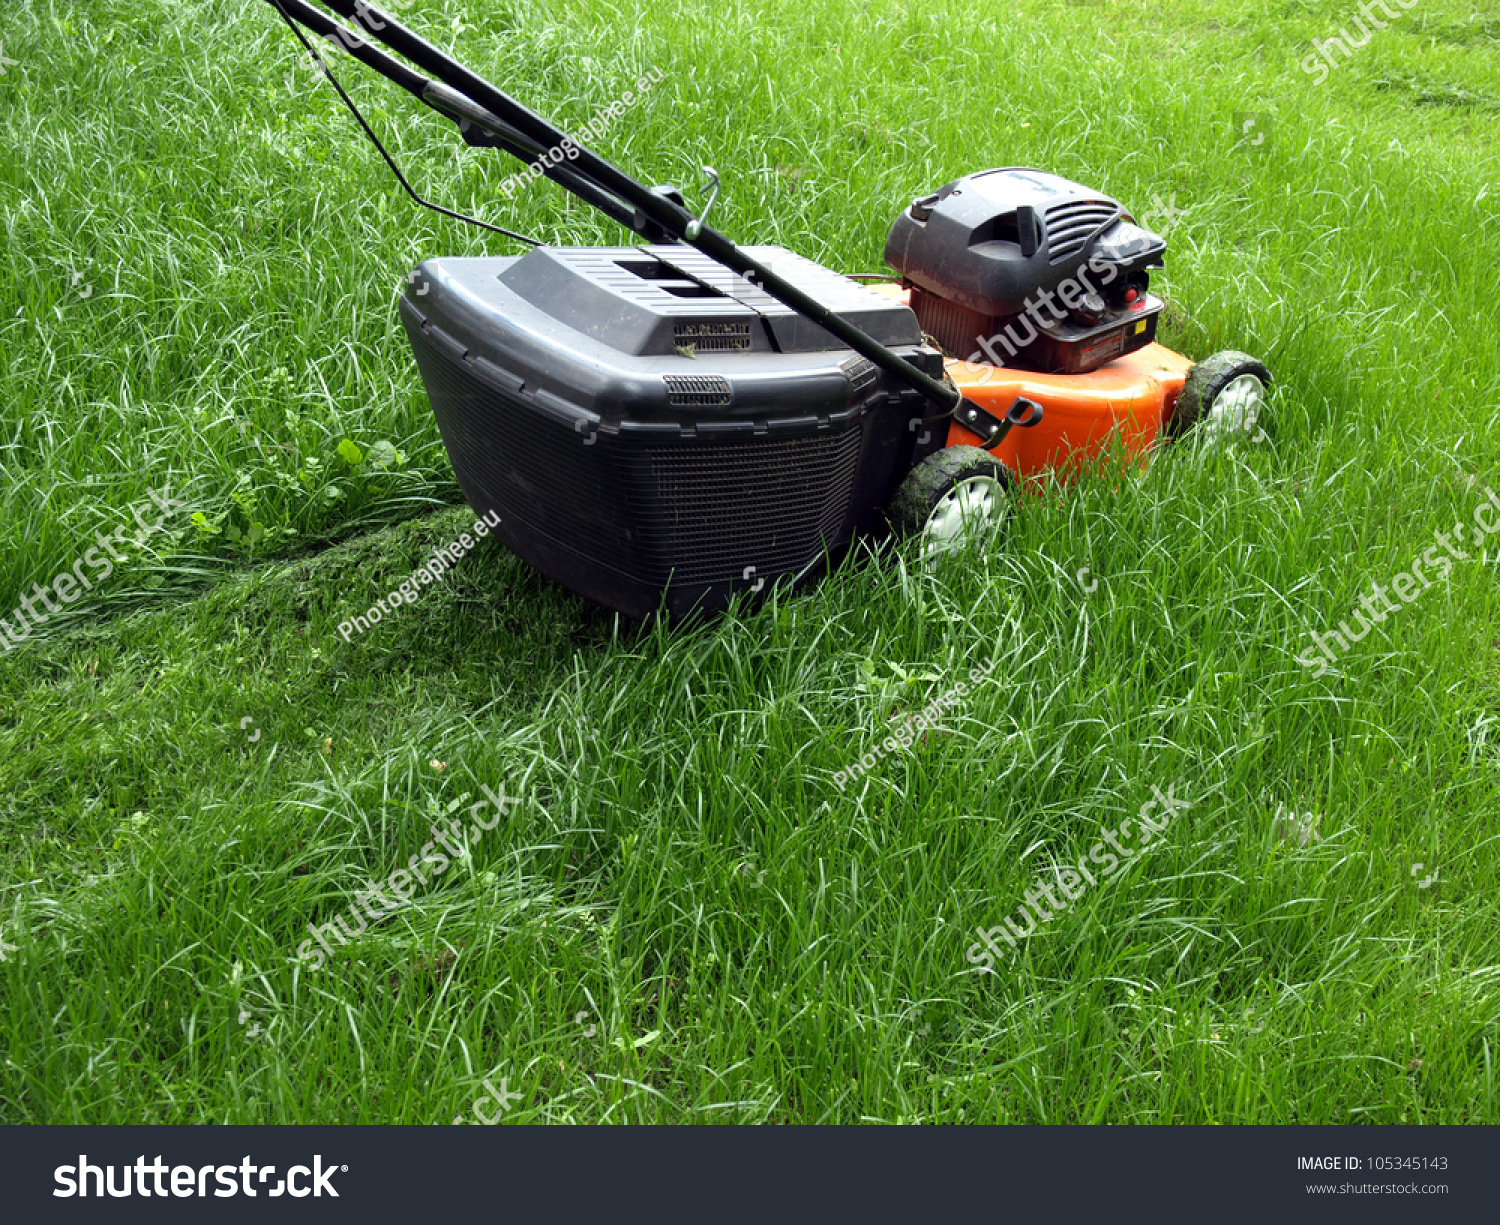 Mowing lawn lawn mower stock photo 105345143 shutterstock for Lawn mower cutting grass